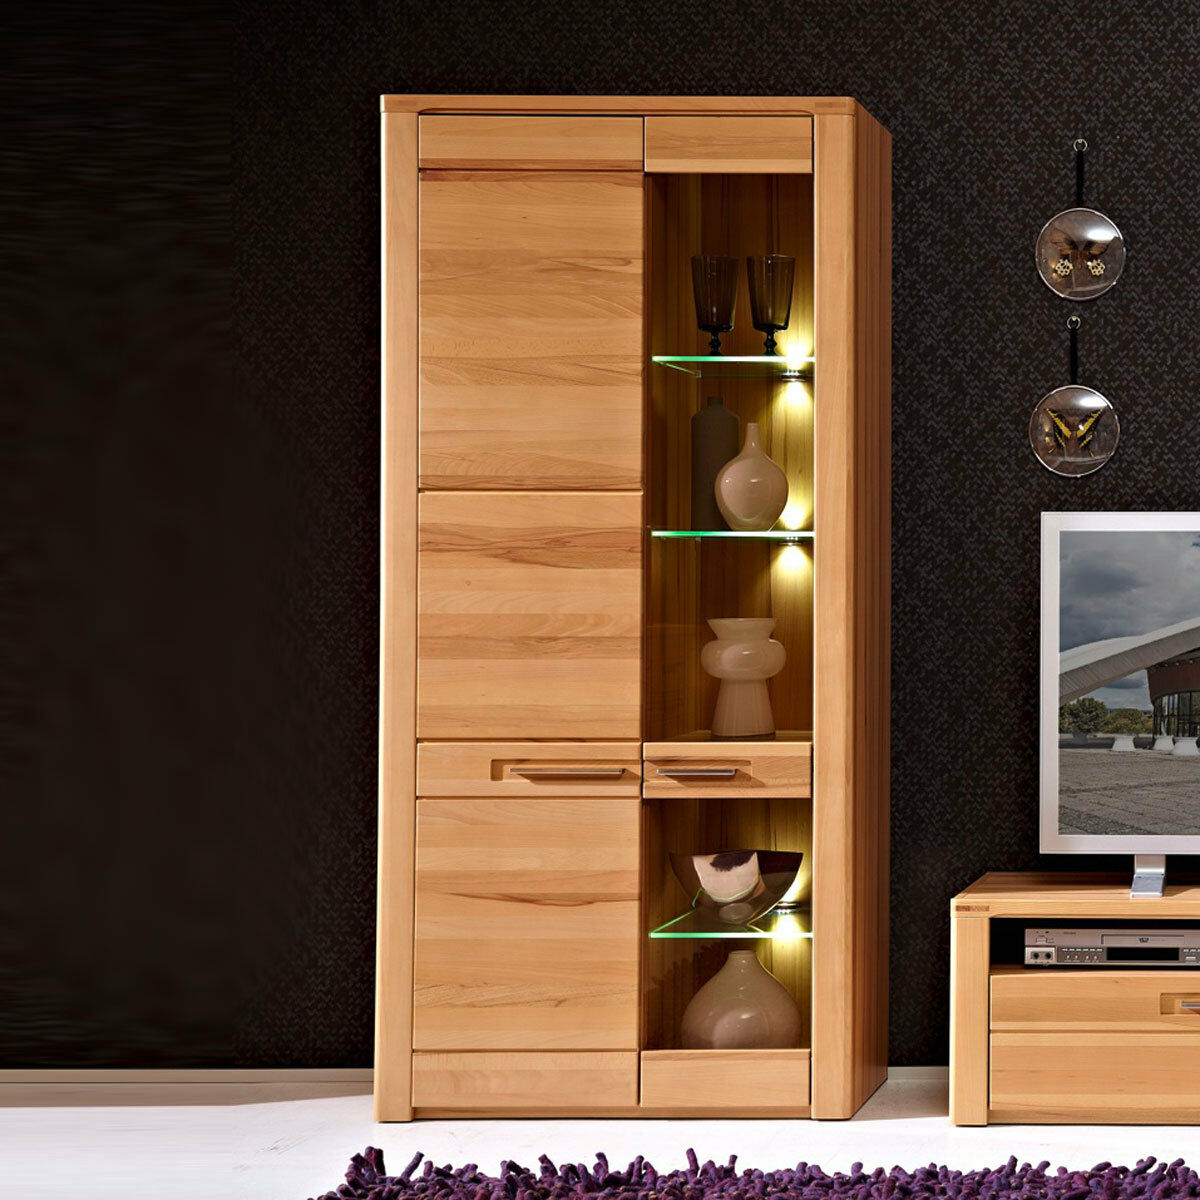 vitrine nature plus wohnzimmer hoher schrank kernbuche teilmassiv mit led eur 479 95 picclick de. Black Bedroom Furniture Sets. Home Design Ideas